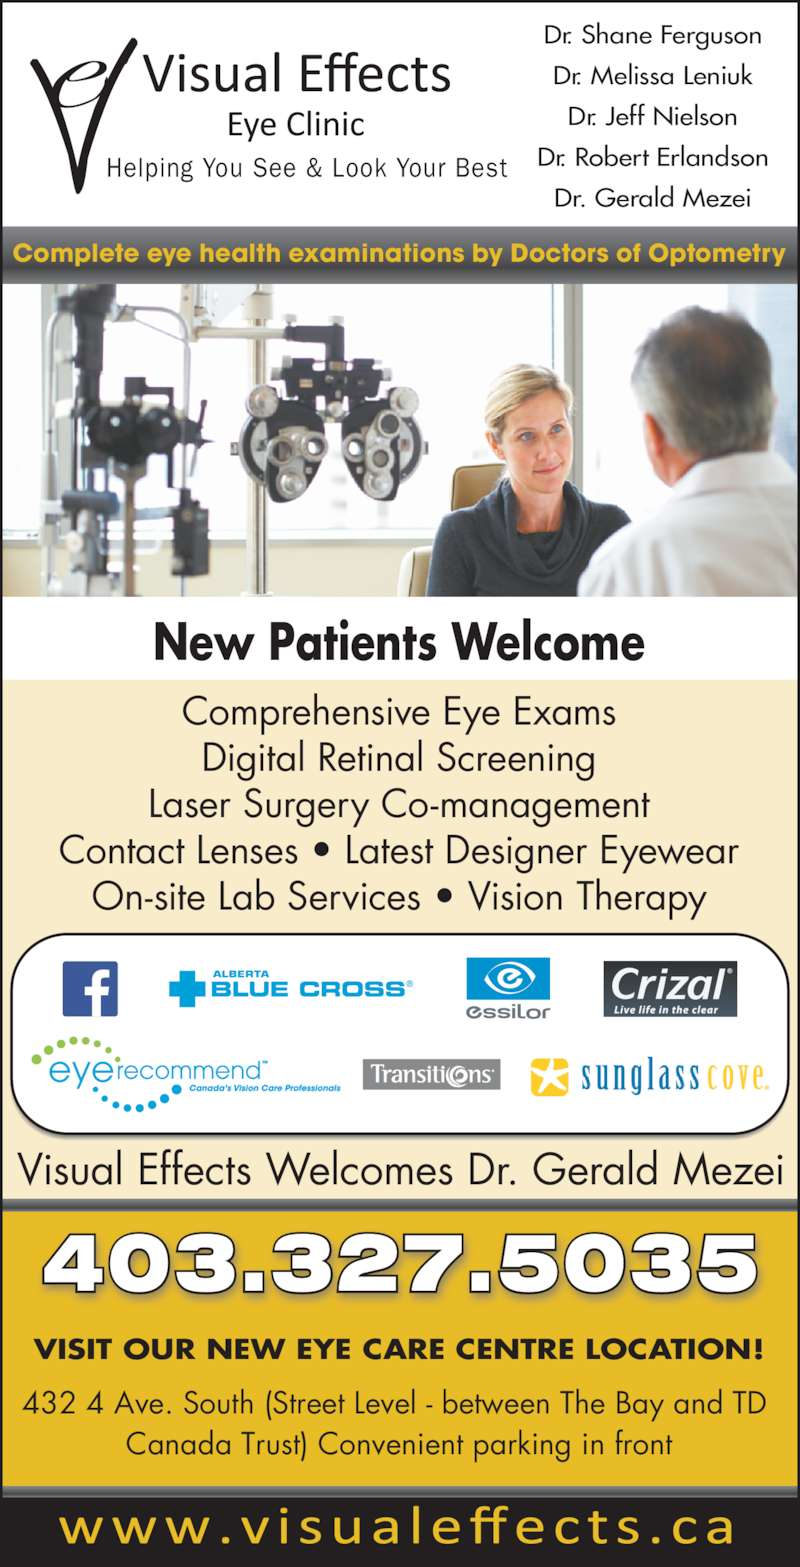 Visual Effects (403-327-5035) - Display Ad - New Patients Welcome 403.327.5035 VISIT OUR NEW EYE CARE CENTRE LOCATION! 432 4 Ave. South (Street Level - between The Bay and TD  Canada Trust) Convenient parking in front Dr. Shane Ferguson Dr. Gerald Mezei Dr. Melissa Leniuk Dr. Jeff Nielson Dr. Robert Erlandson Helping You See & Look Your Best Complete eye health examinations by Doctors of Optometry Comprehensive Eye Exams Digital Retinal Screening Laser Surgery Co-management Contact Lenses ? Latest Designer Eyewear On-site Lab Services ? Vision Therapy Visual Effects Welcomes Dr. Gerald Mezei